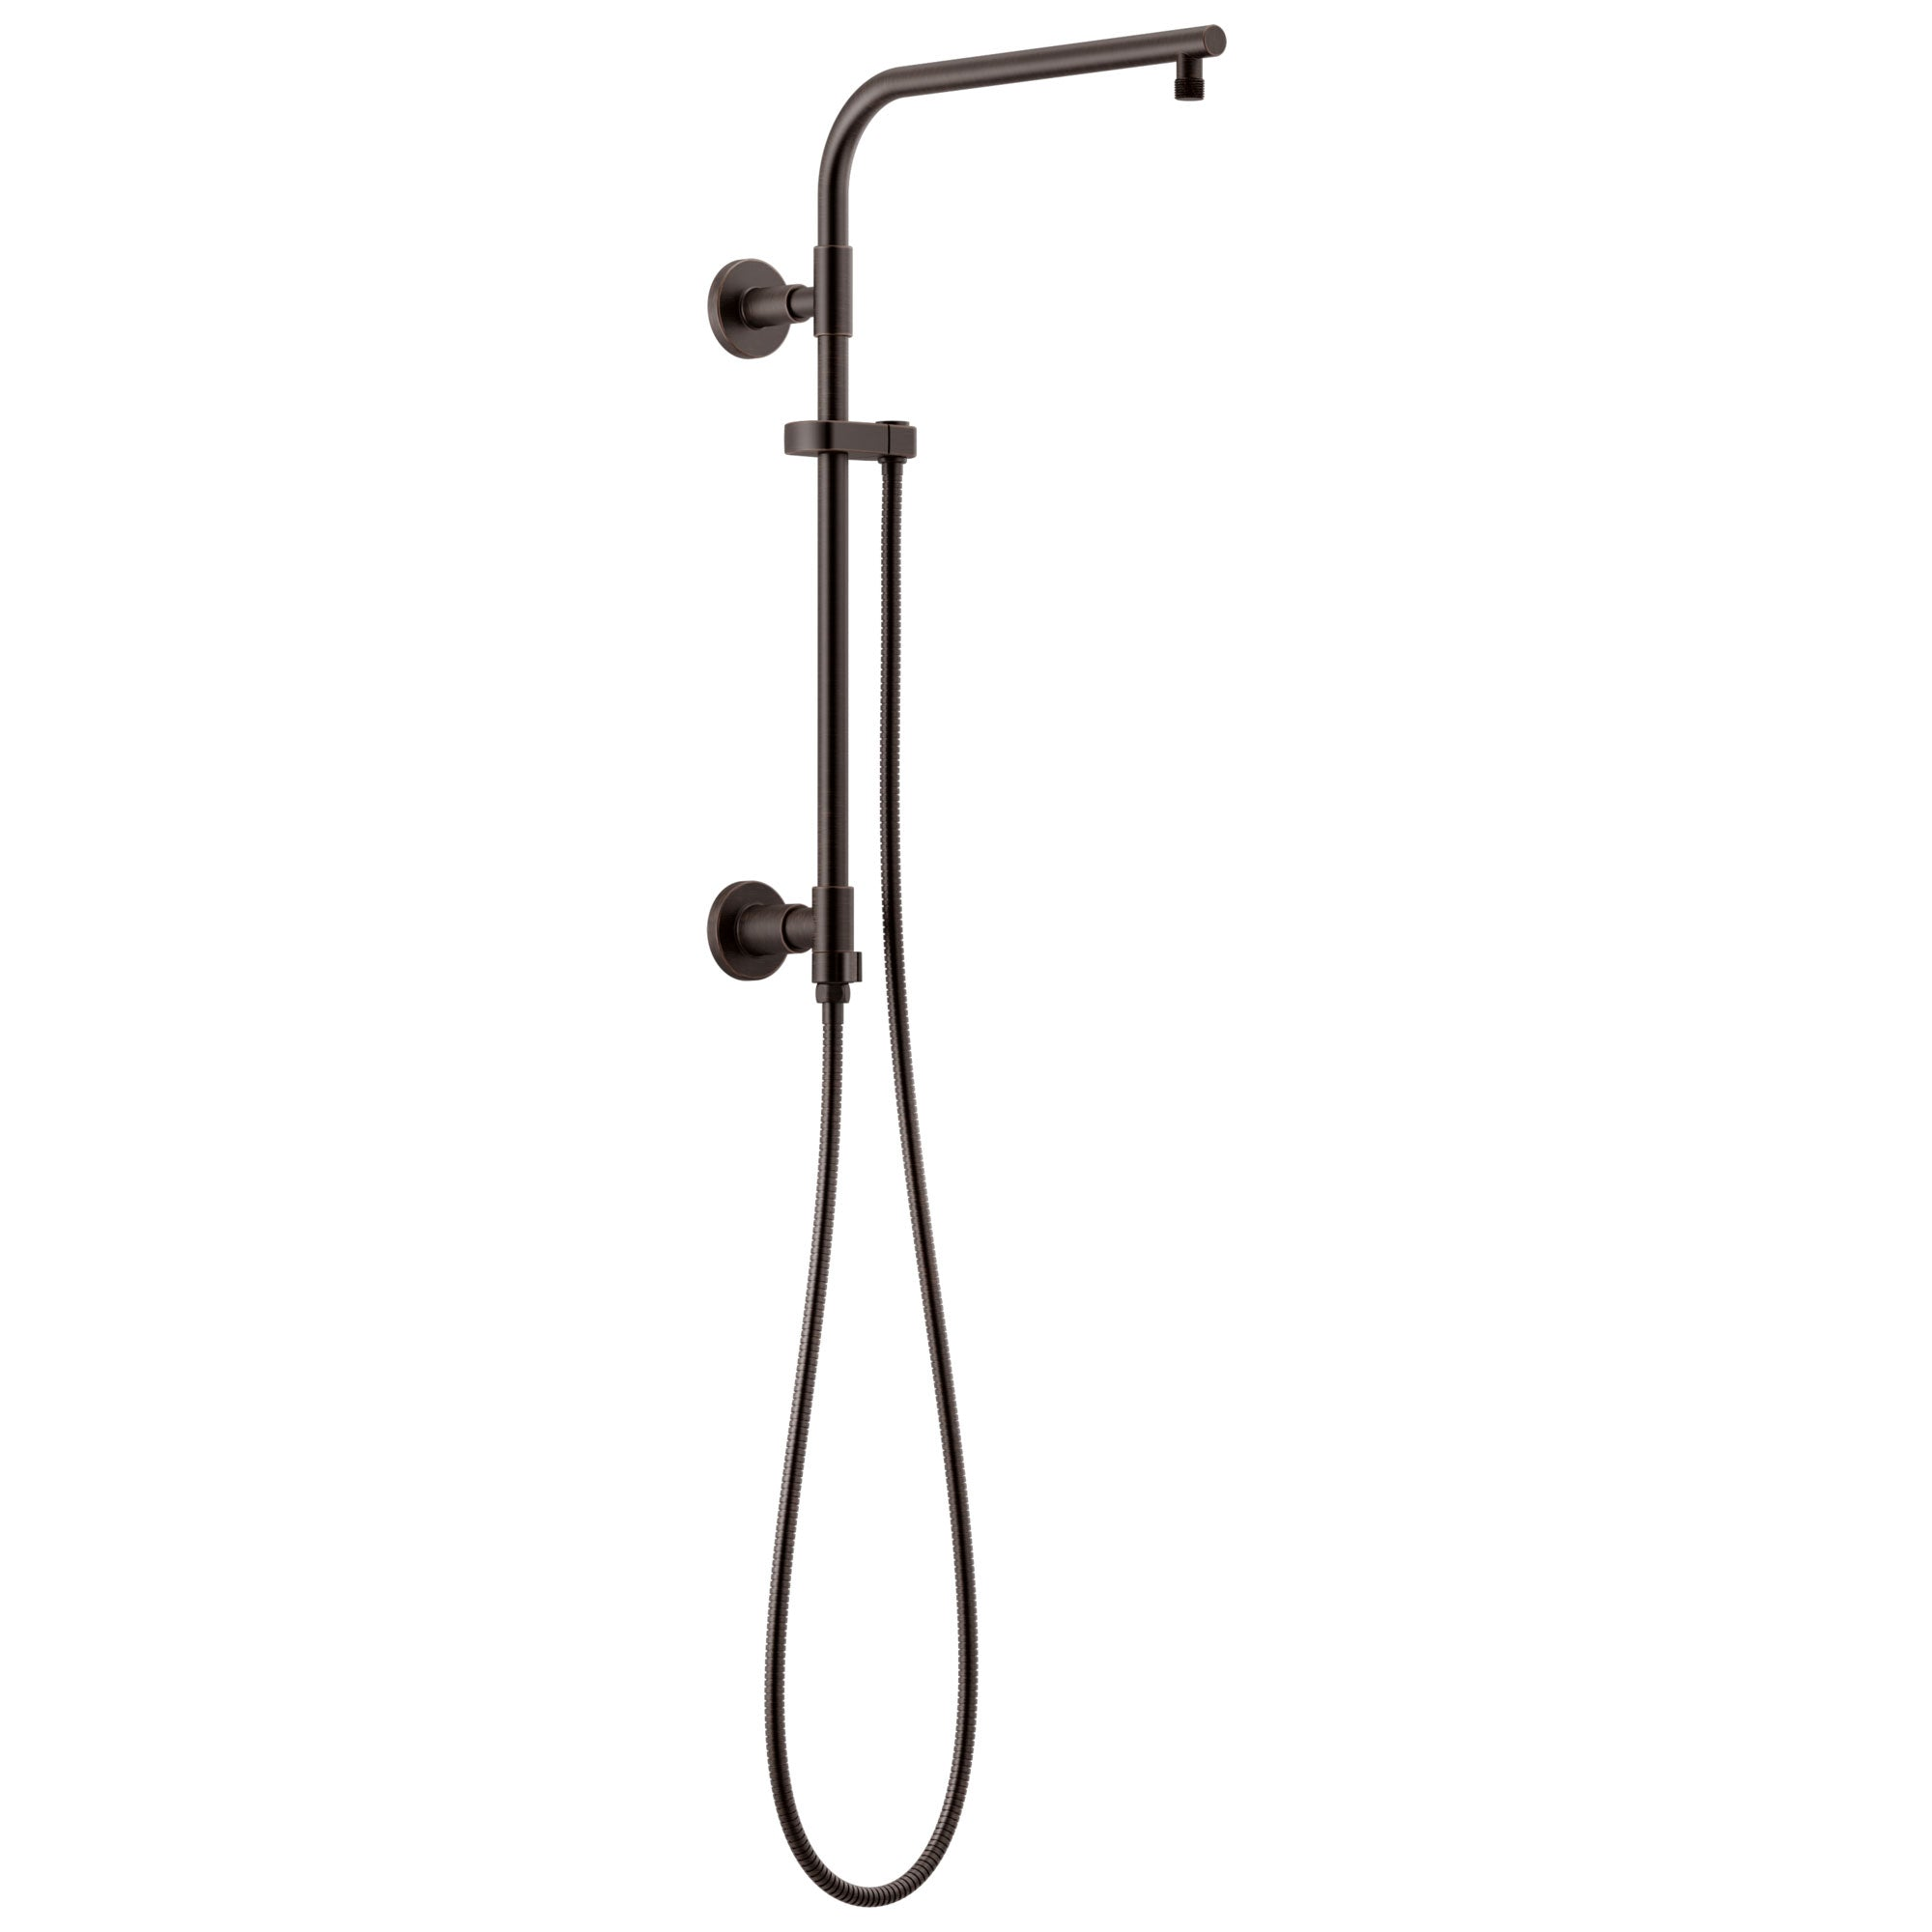 "Delta Venetian Bronze Finish Emerge Shower Column 18"" Round (Requires Showerhead, Hand Spray, and Control) D58810RB"